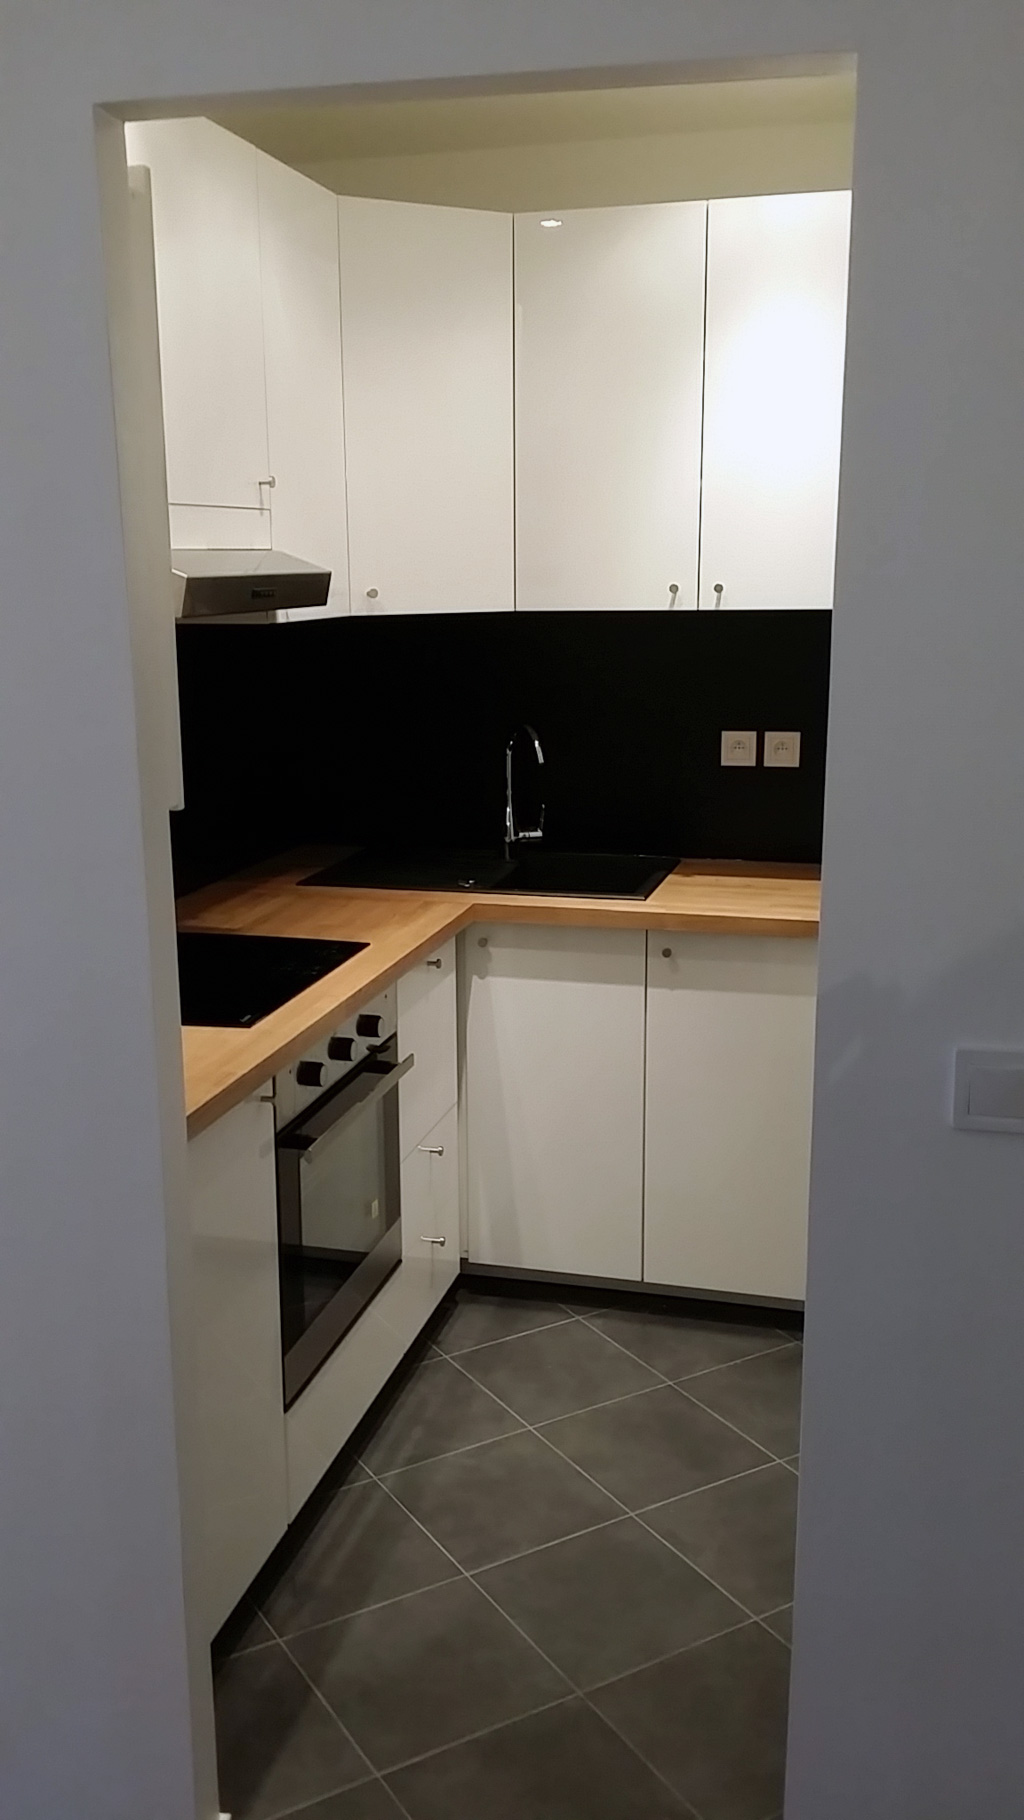 Appartement 35m2 Photo R3invest Letort Appartement 35m2